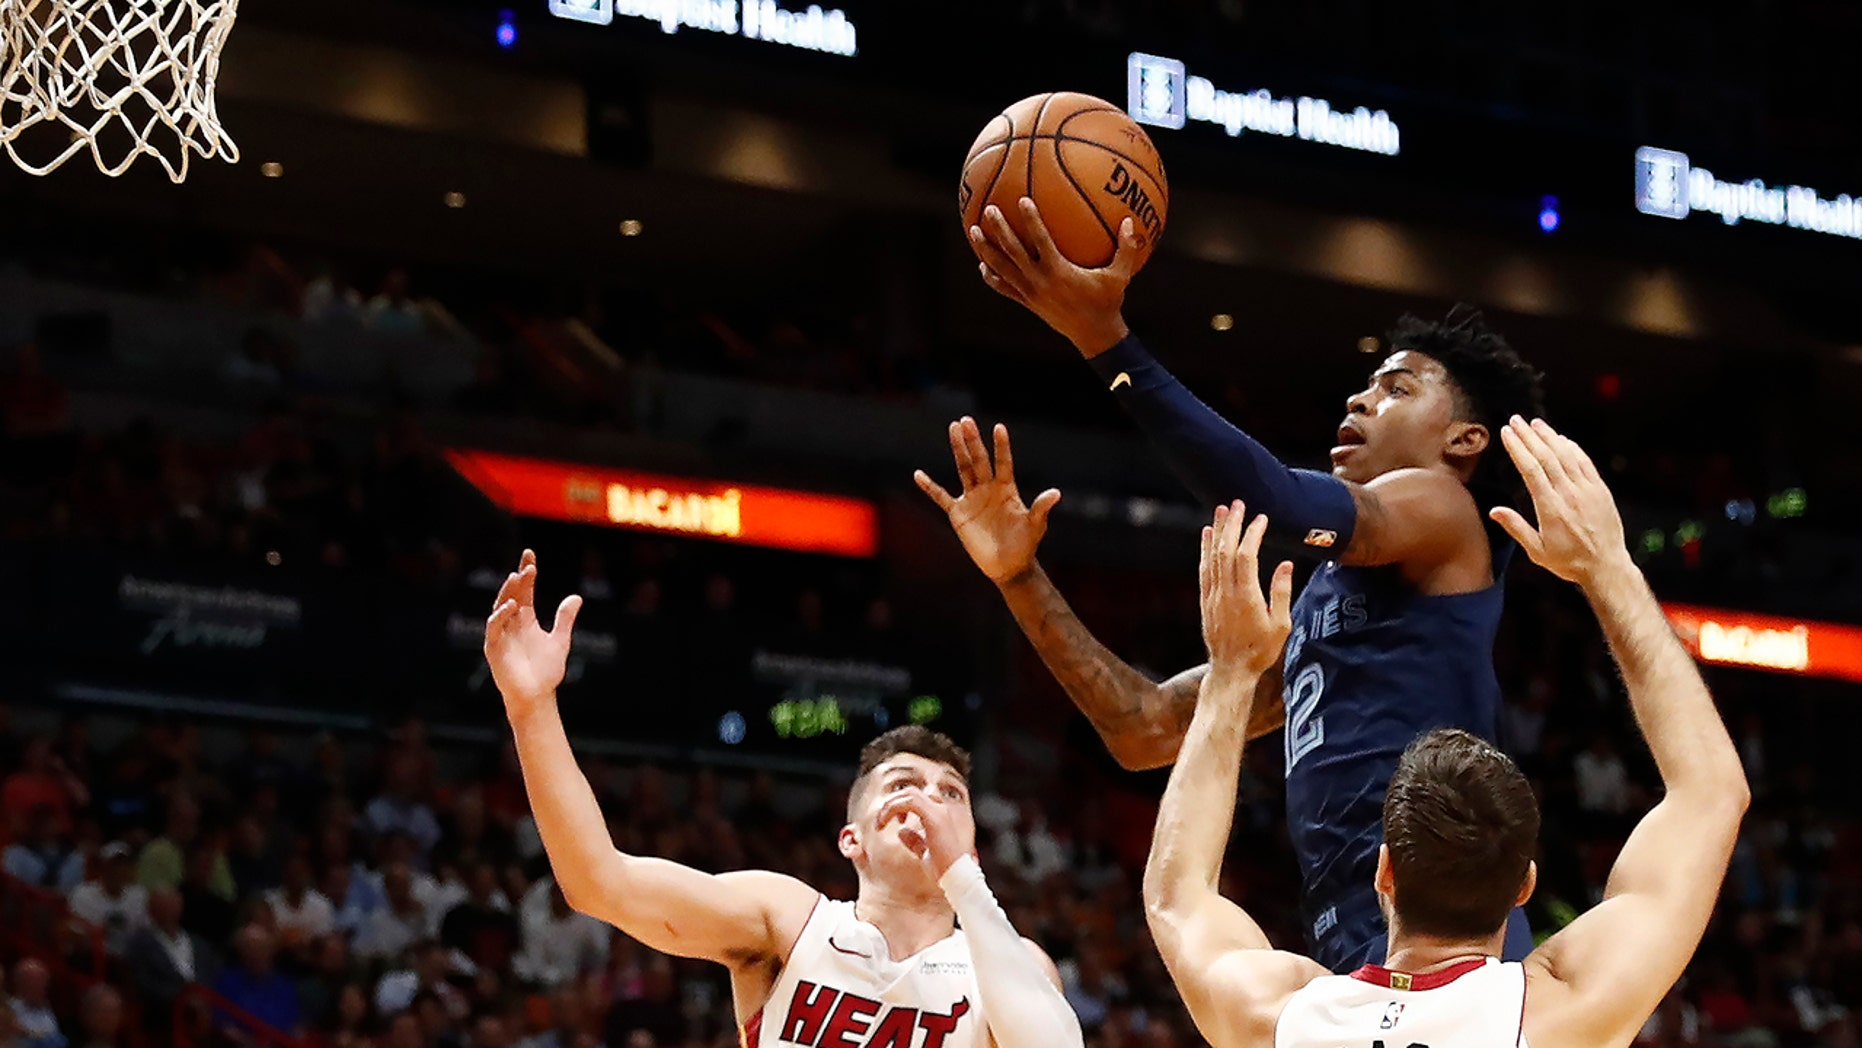 Memphis Grizzlies' Ja Morant (12) shoots as Miami Heat guards Tyler Herro (14) and Goran Dragic (7) defend during the first half of an NBA basketball game Wednesday, Oct. 23, 2019, in Miami. (AP Photo/Brynn Anderson)